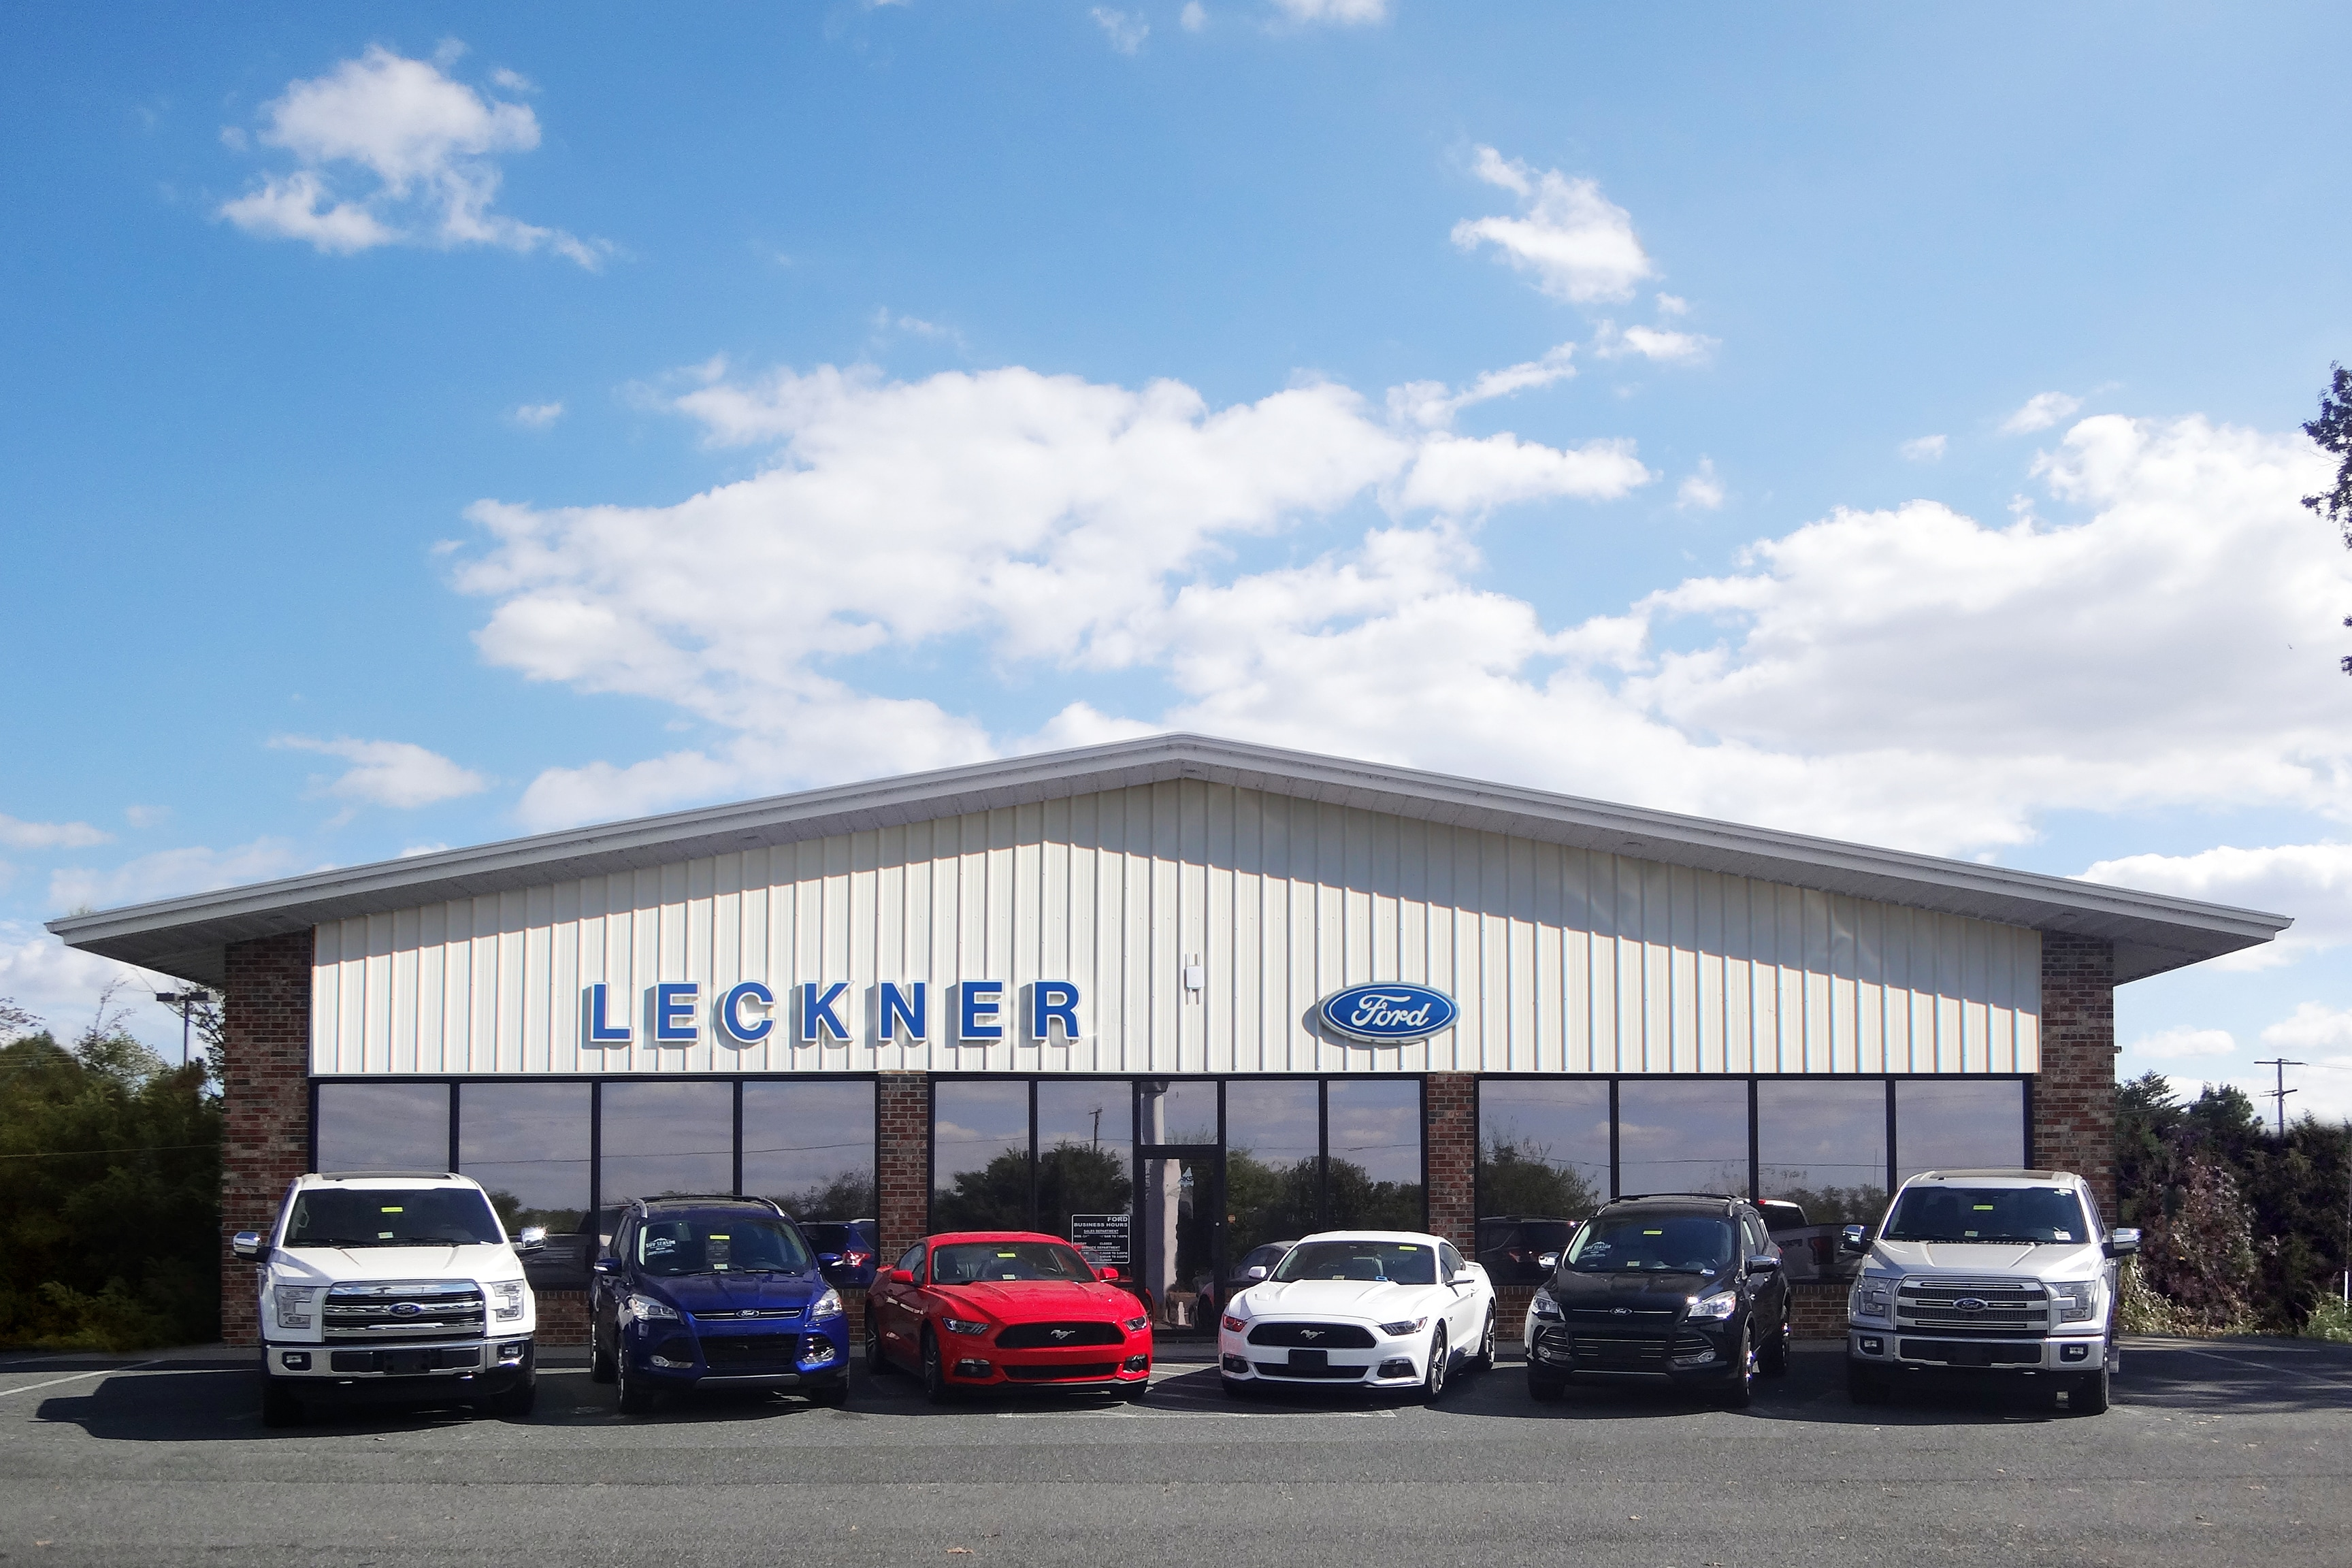 About Leckner Ford in King George